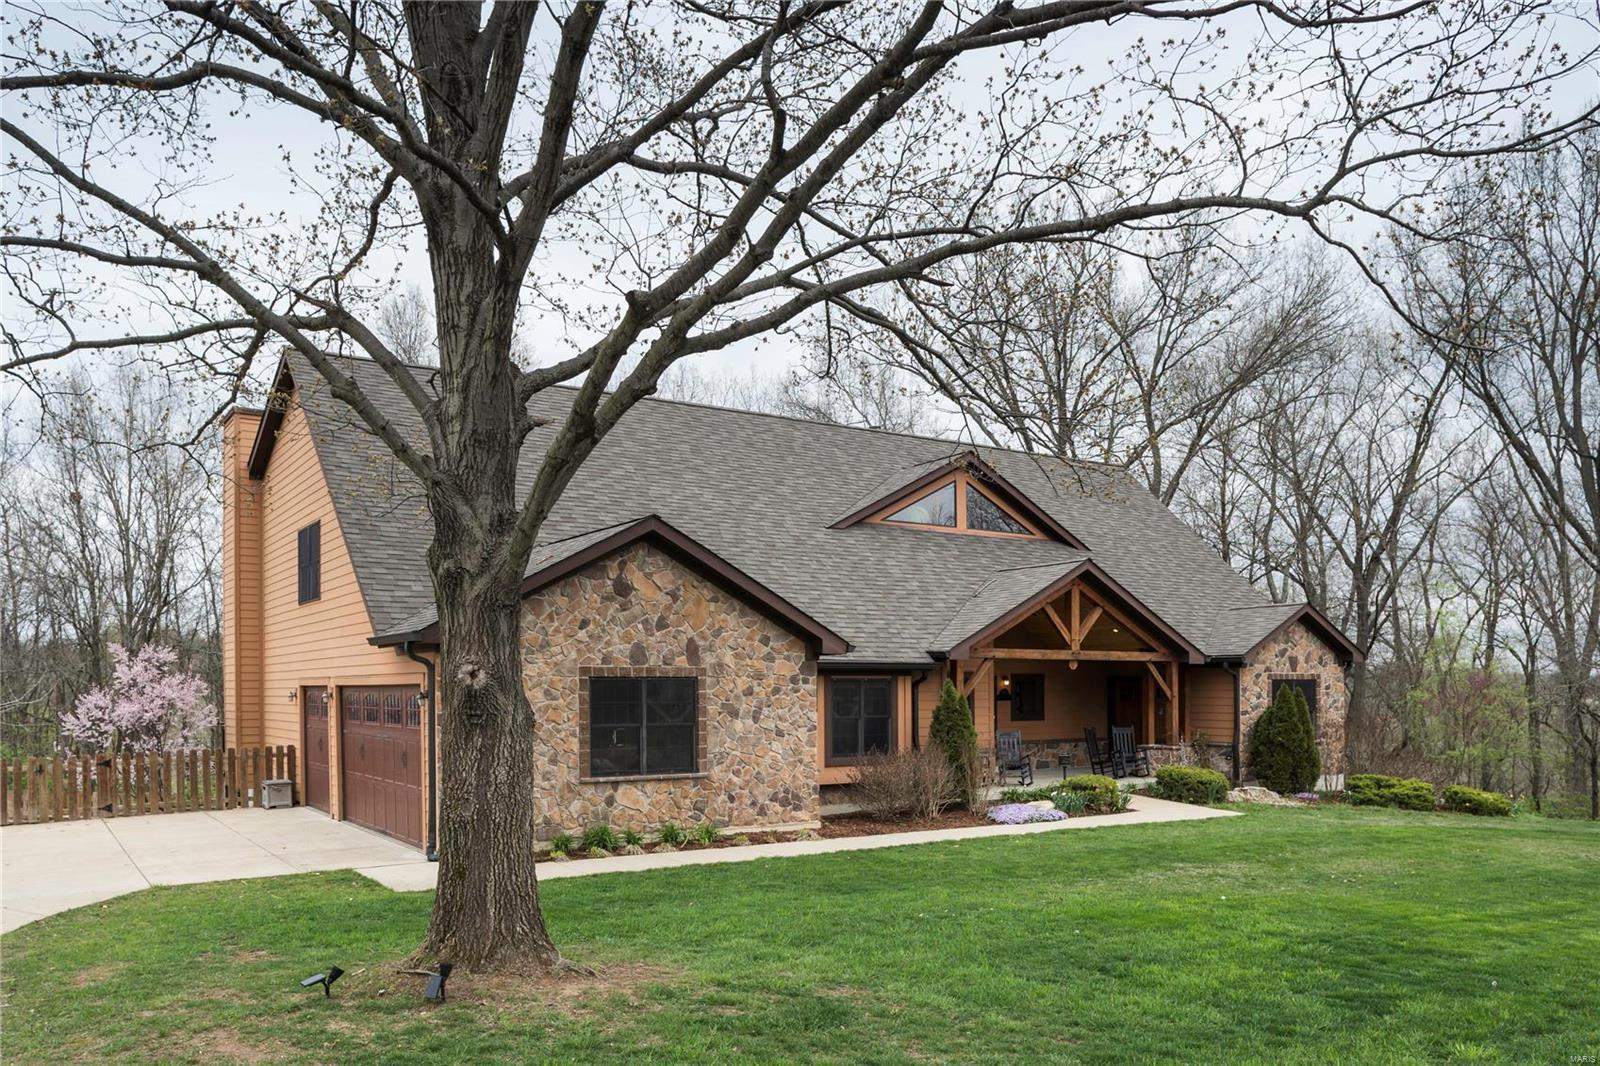 7 bed / 6 full, 1 partial baths Home in St Louis for $998,900